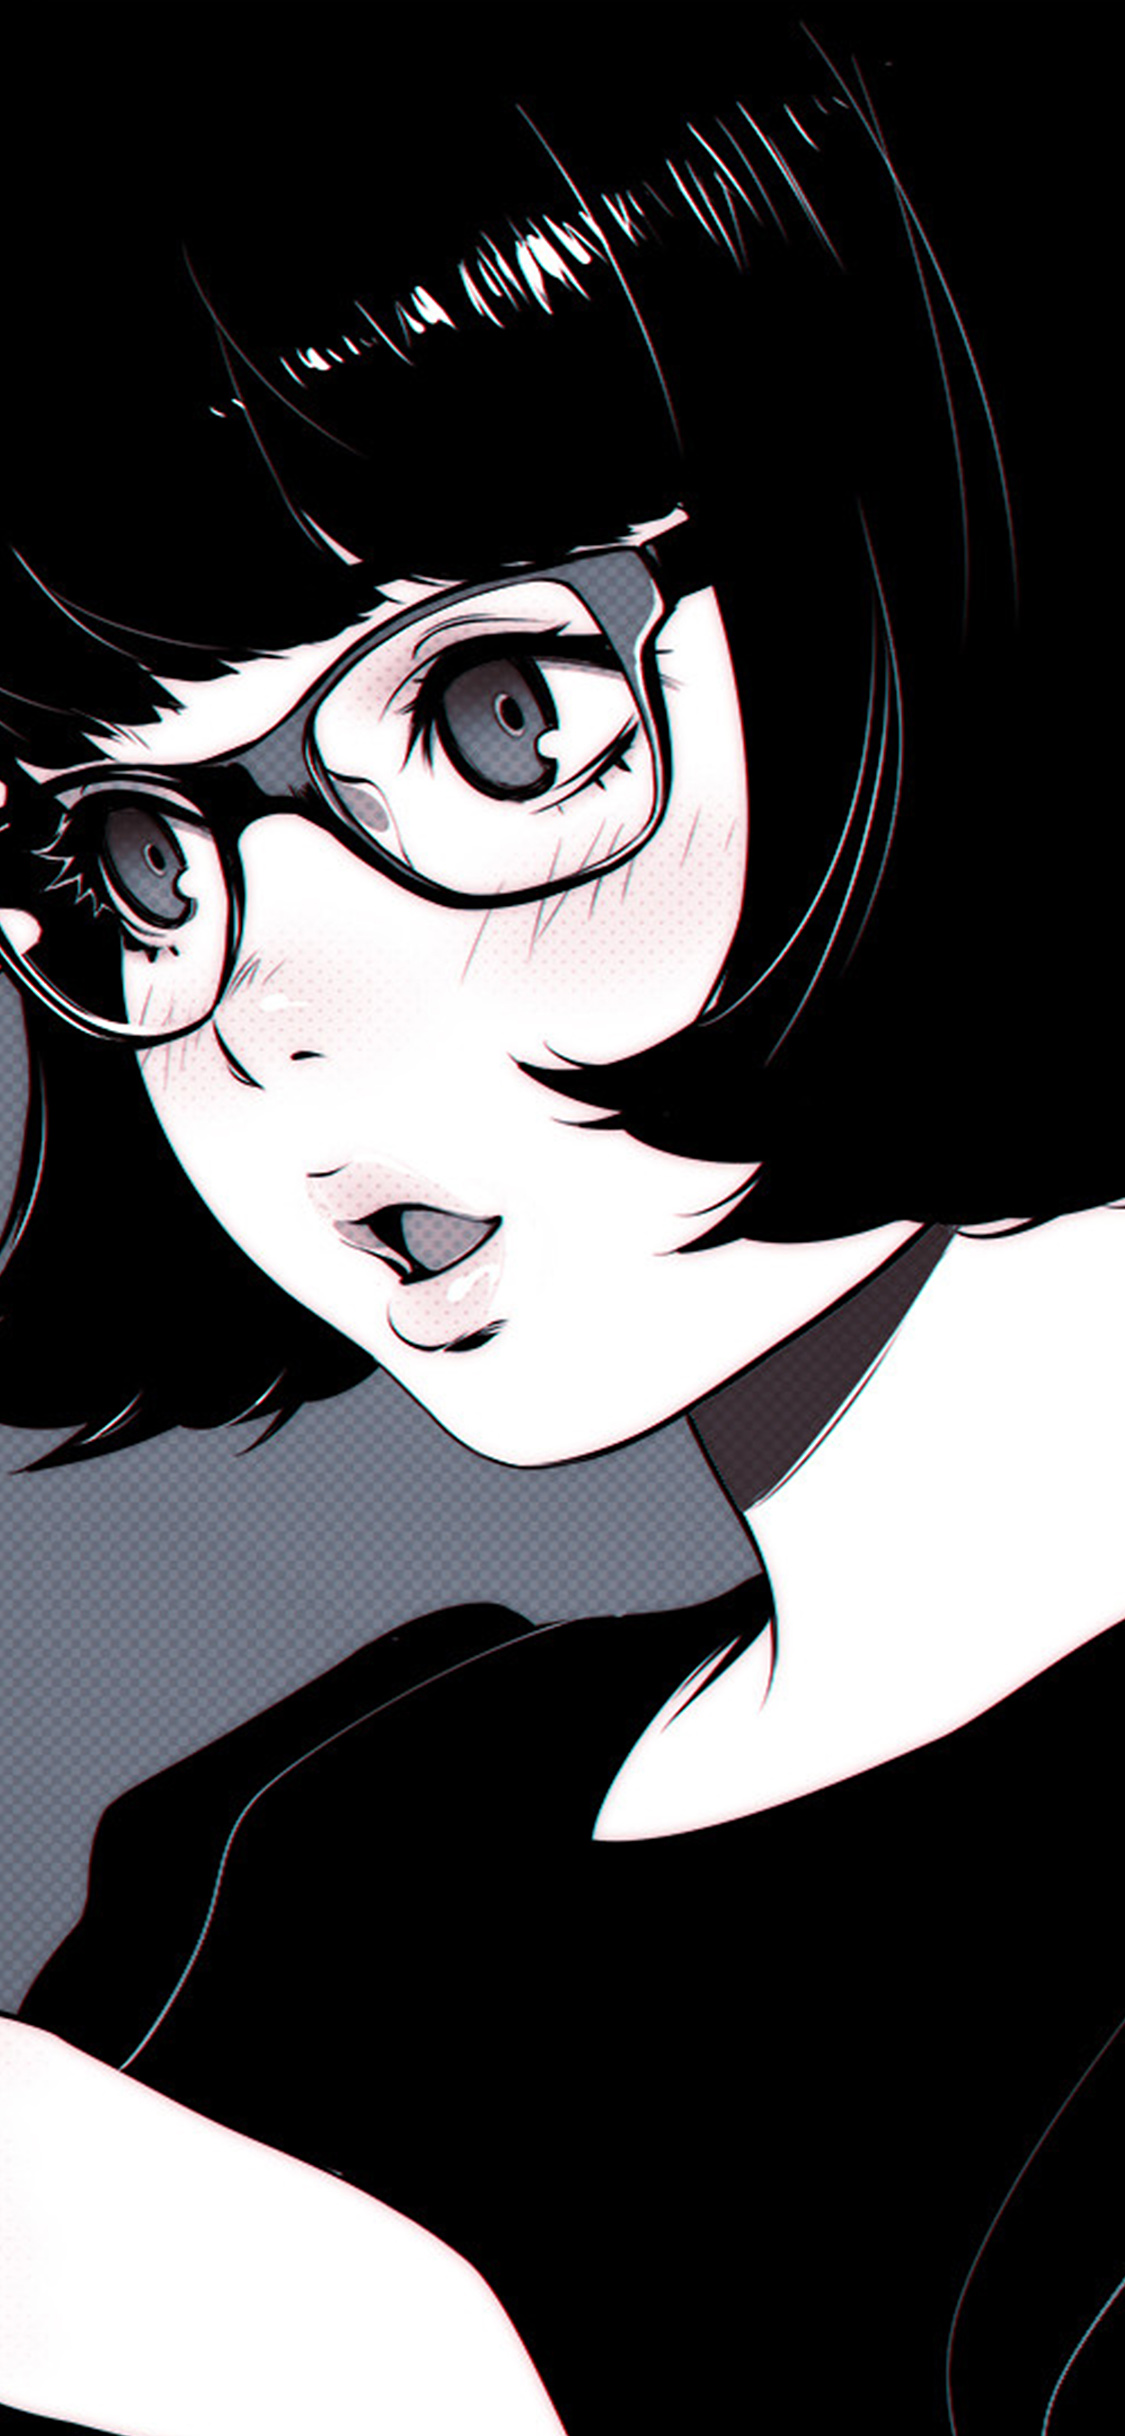 Galaxy Wallpaper For Iphone 4 Aw22 Girl Bw Anime Ilya Kuvshinov Illustration Art Wallpaper